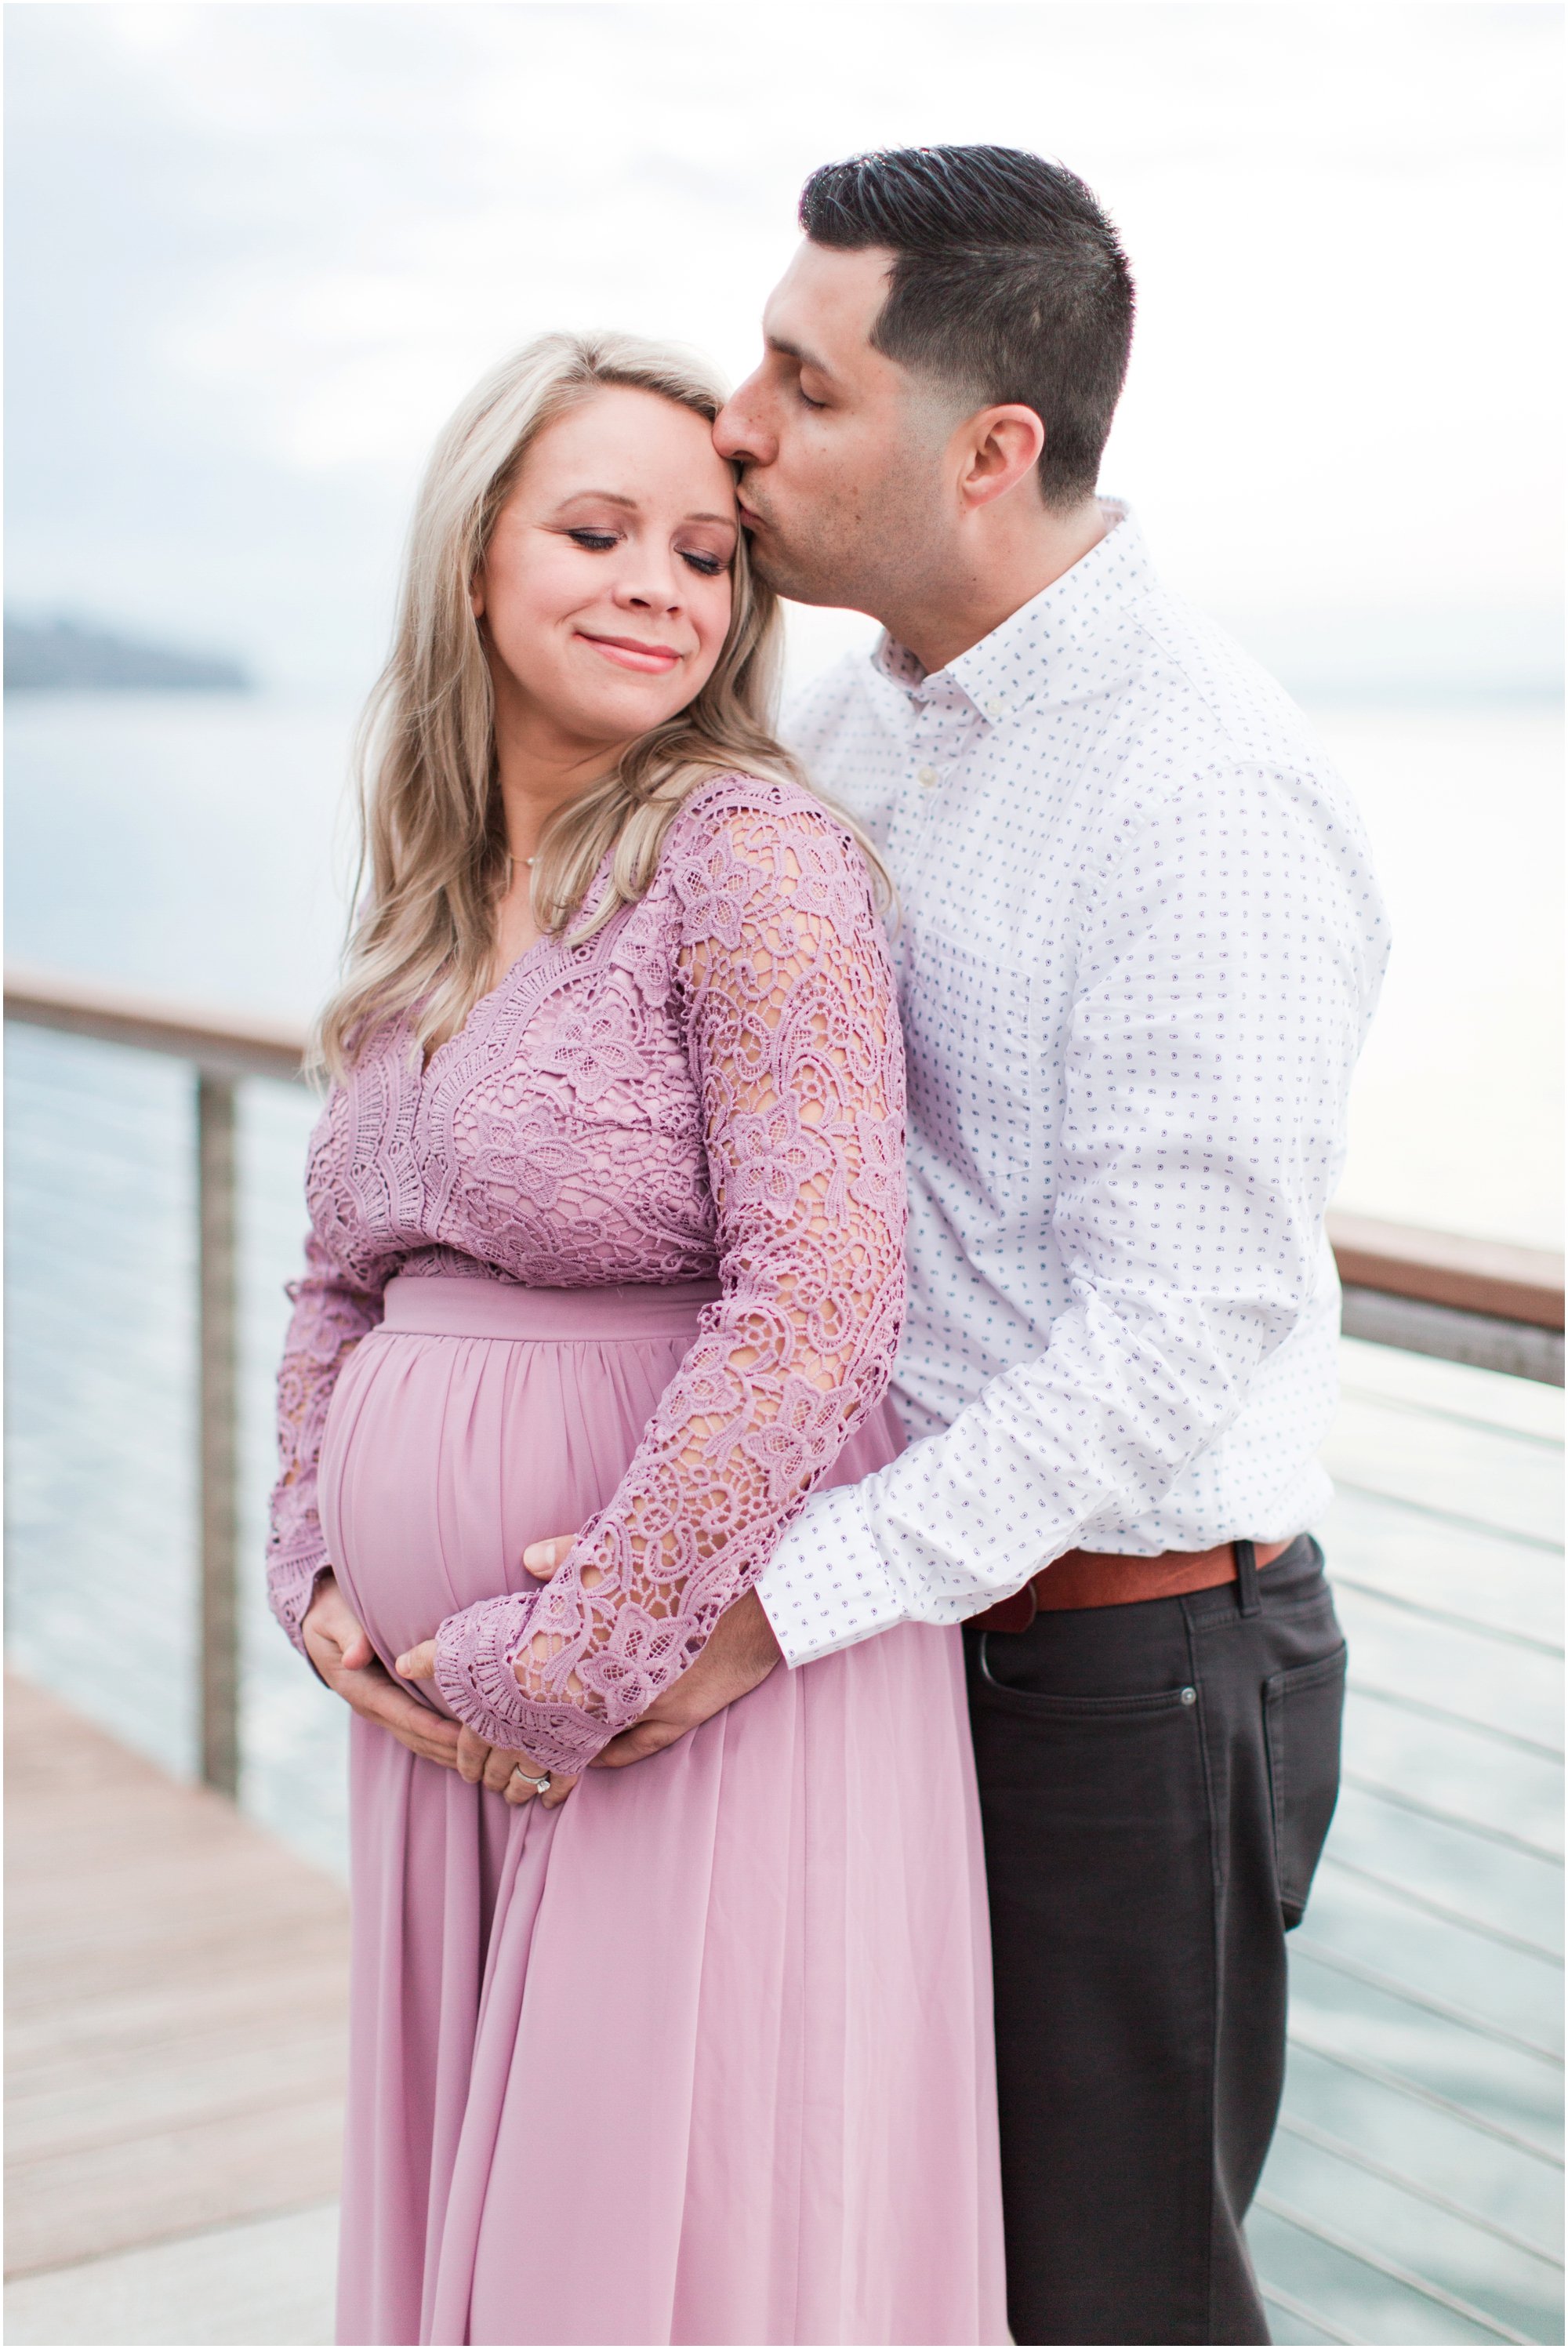 Maternity photos by Briana Calderon Photography based in the Greater Seattle & Tacoma, WA_0997.jpg